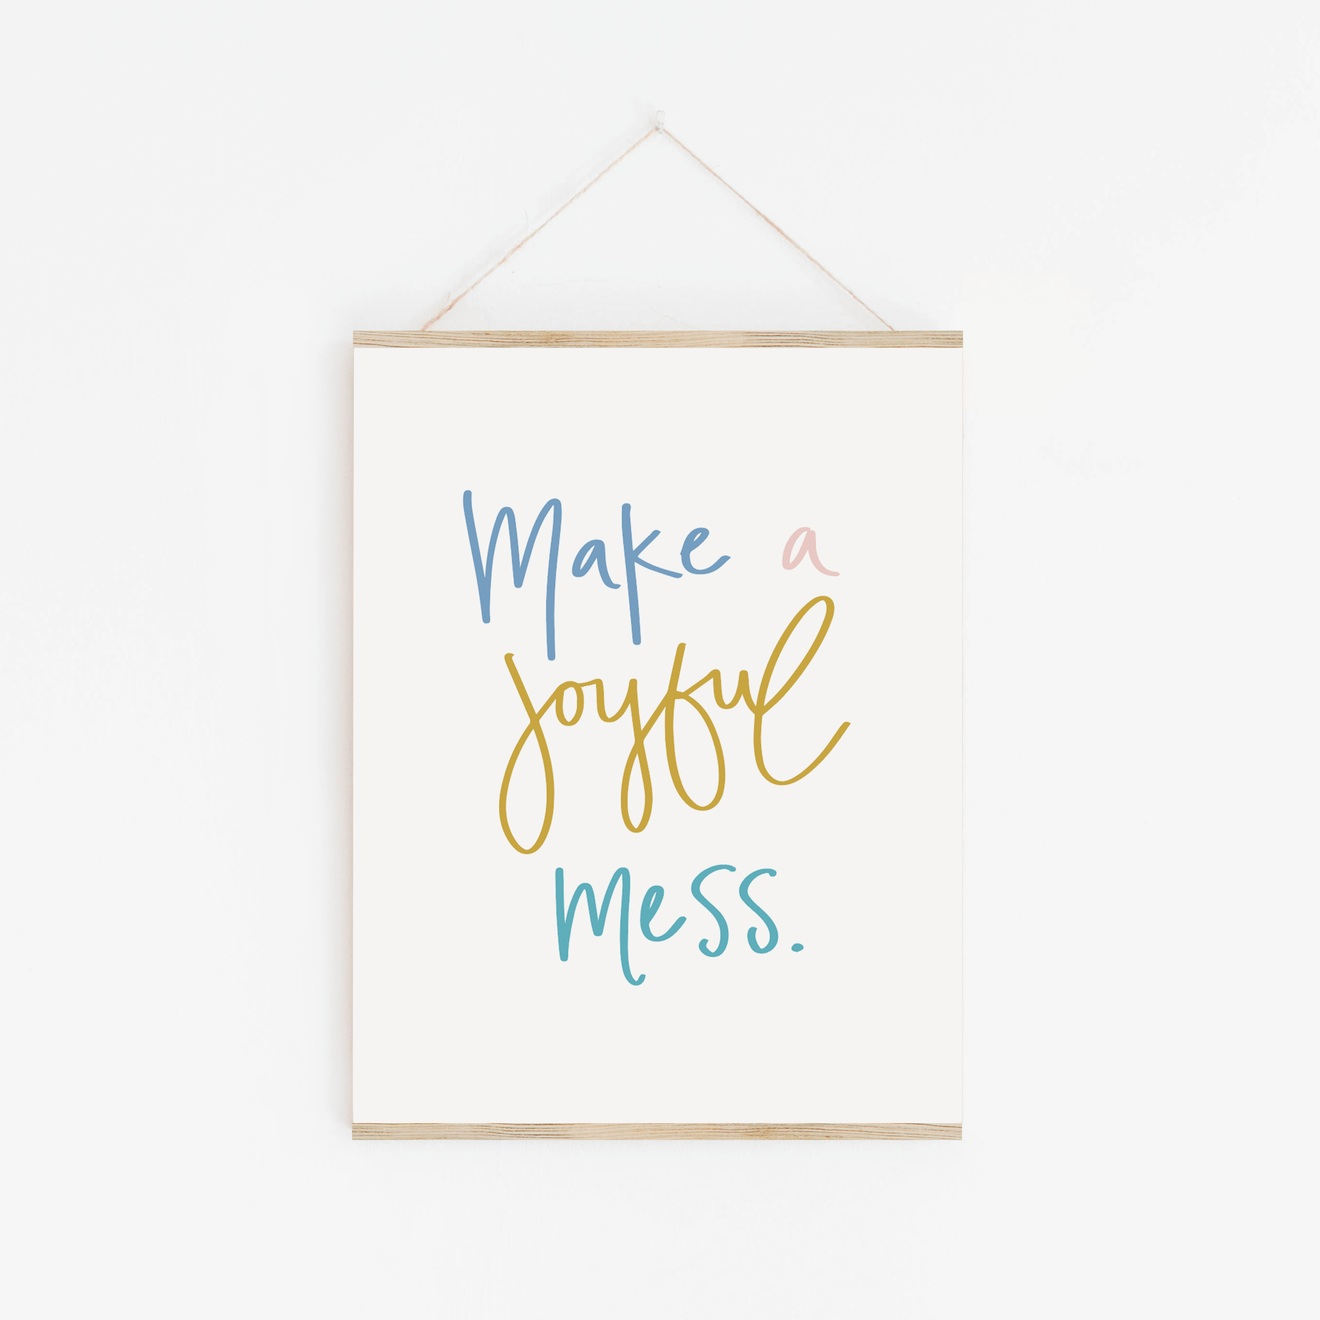 Make a Joyful Mess - Comes in 3 different color variations to remind you and your family that messes can be creative, fun and joyful. Designed to go with The Daily Tidy for Kids, and also available when you purchase the digital workbook.